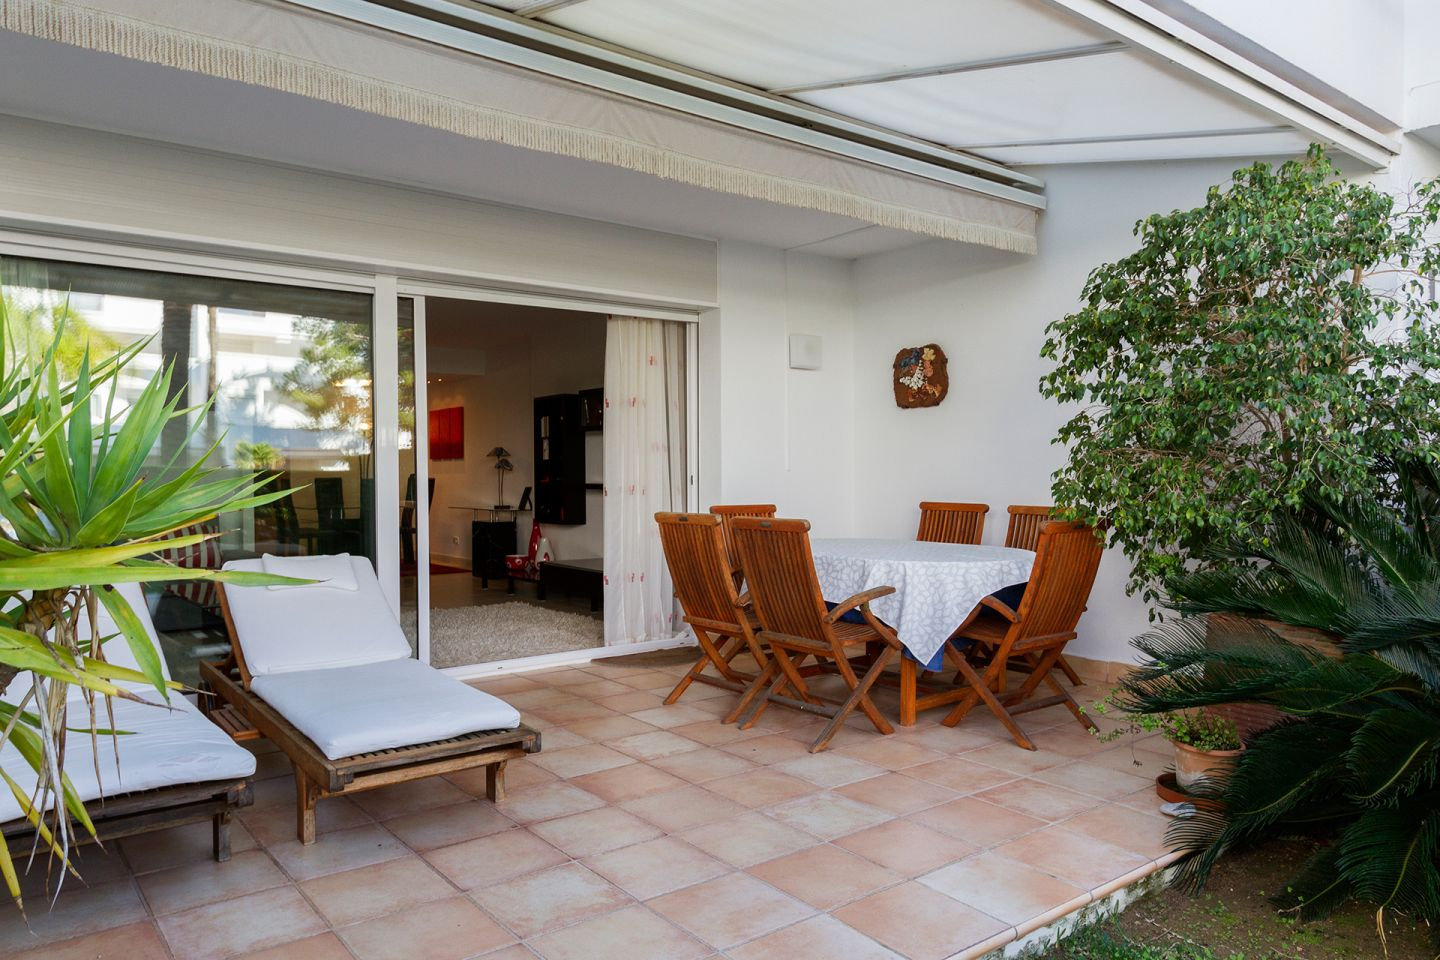 4 Bed Semidetached House for sale in PUERTO POLLENSA 2